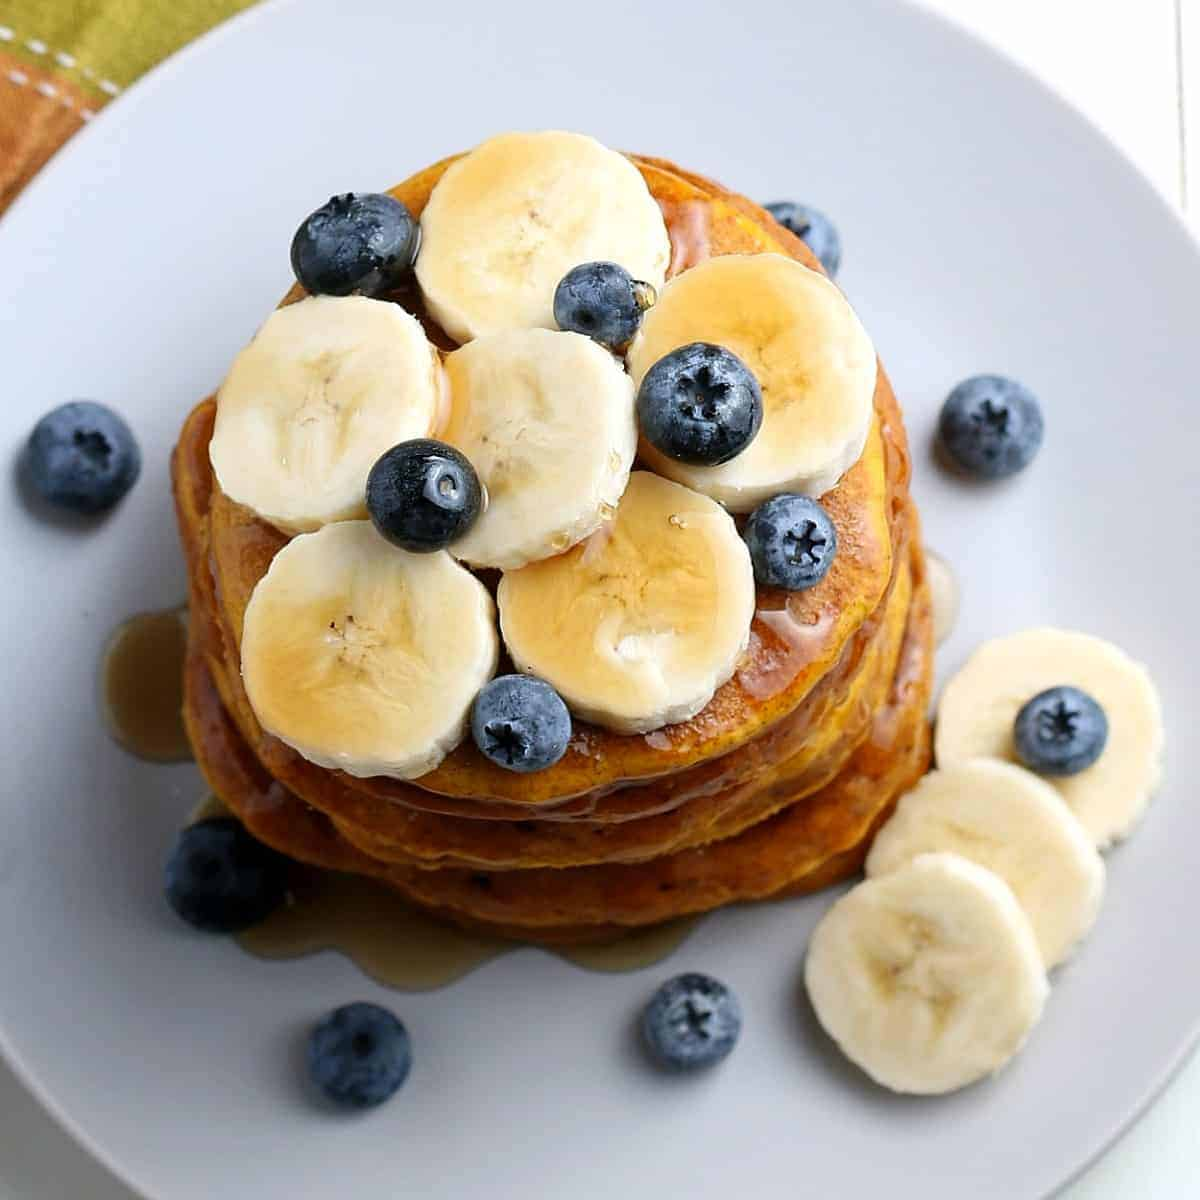 Five pancakes tilted towards the camera with syrup and fruit on top and scattered on the plate.